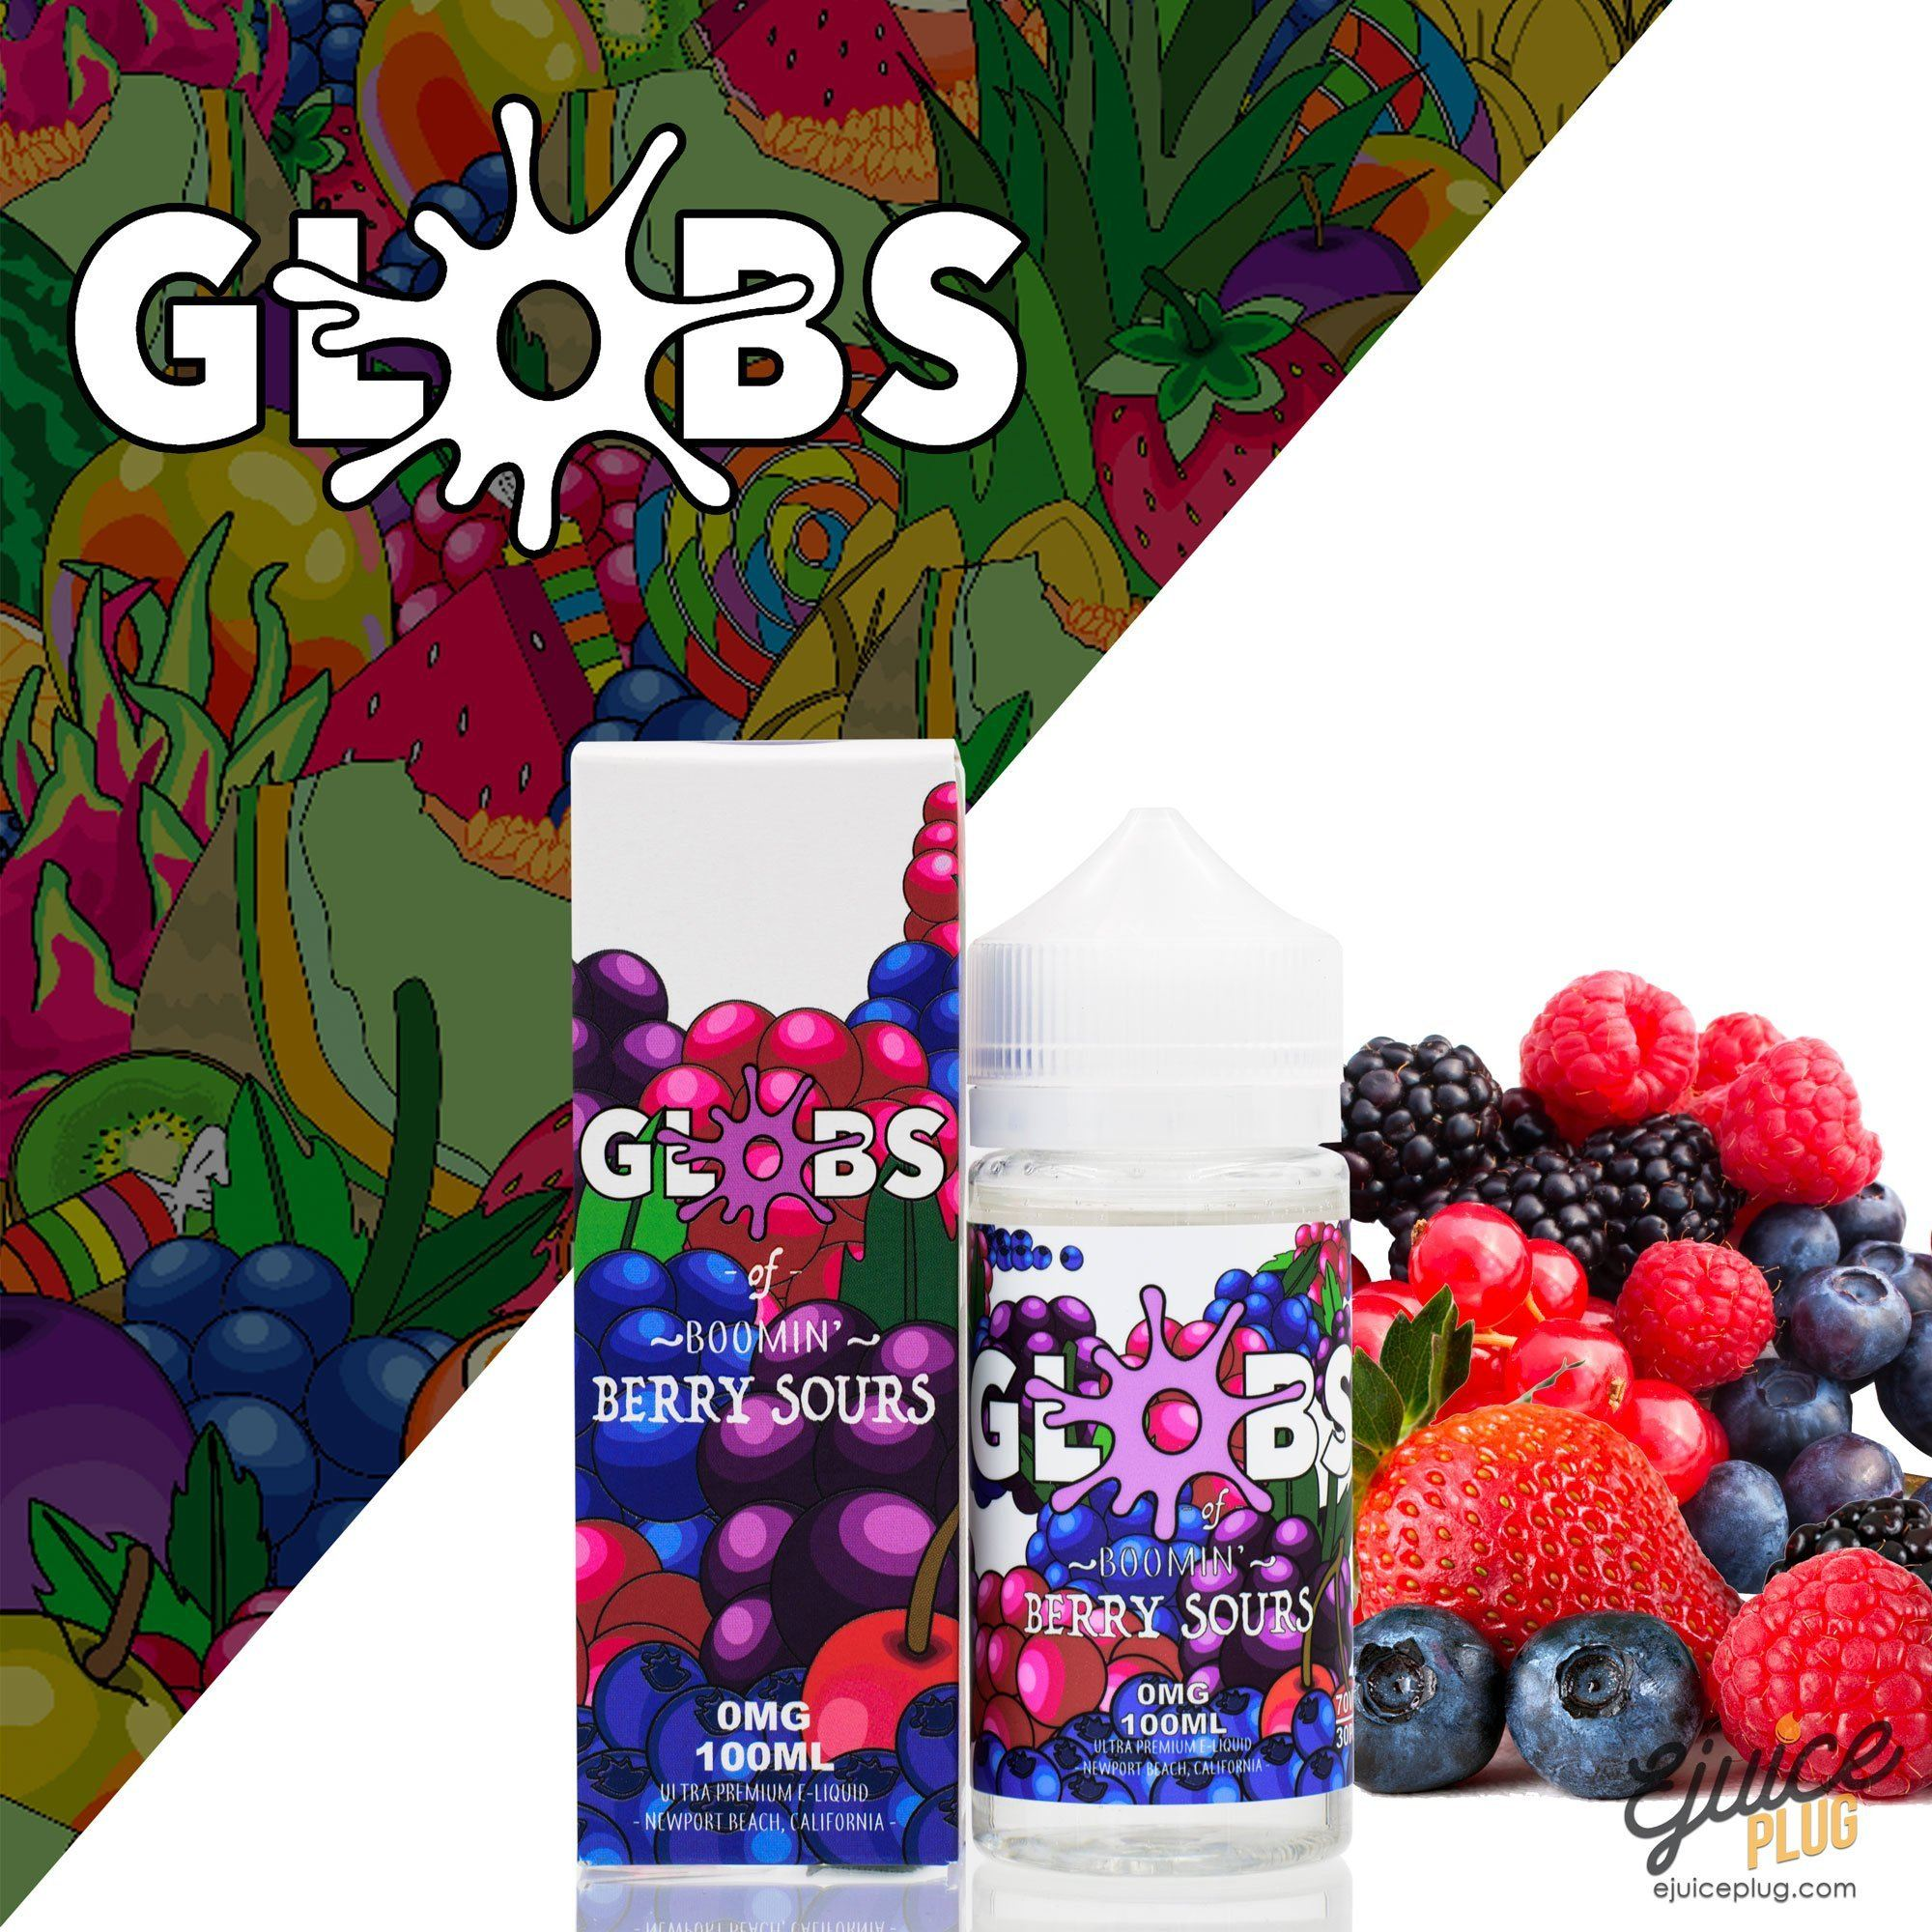 Globs Juice Co.,- Berry Sours 100ml by Globs Juice Co. - E-Juice Plug